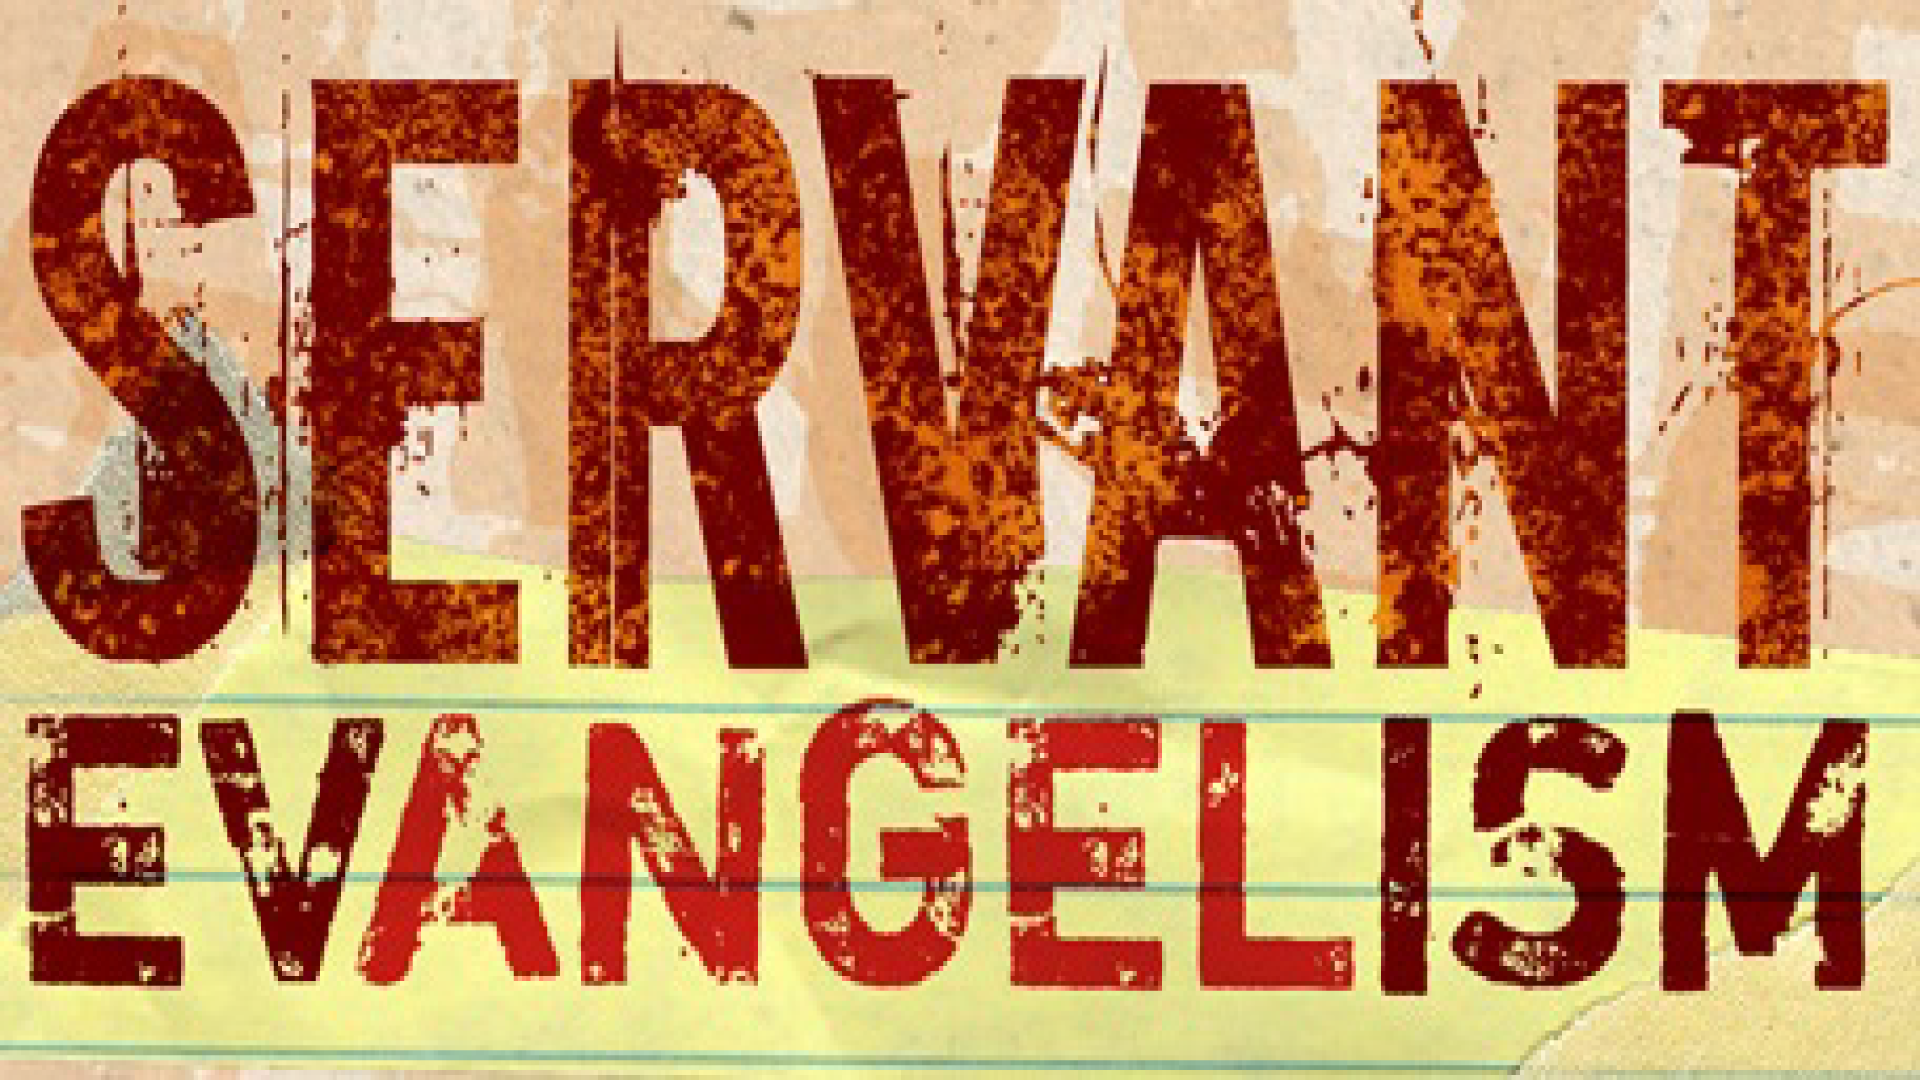 Servant Evangelism: Fall Leaf Raking Saturday, November 9, 10:00 a.m.